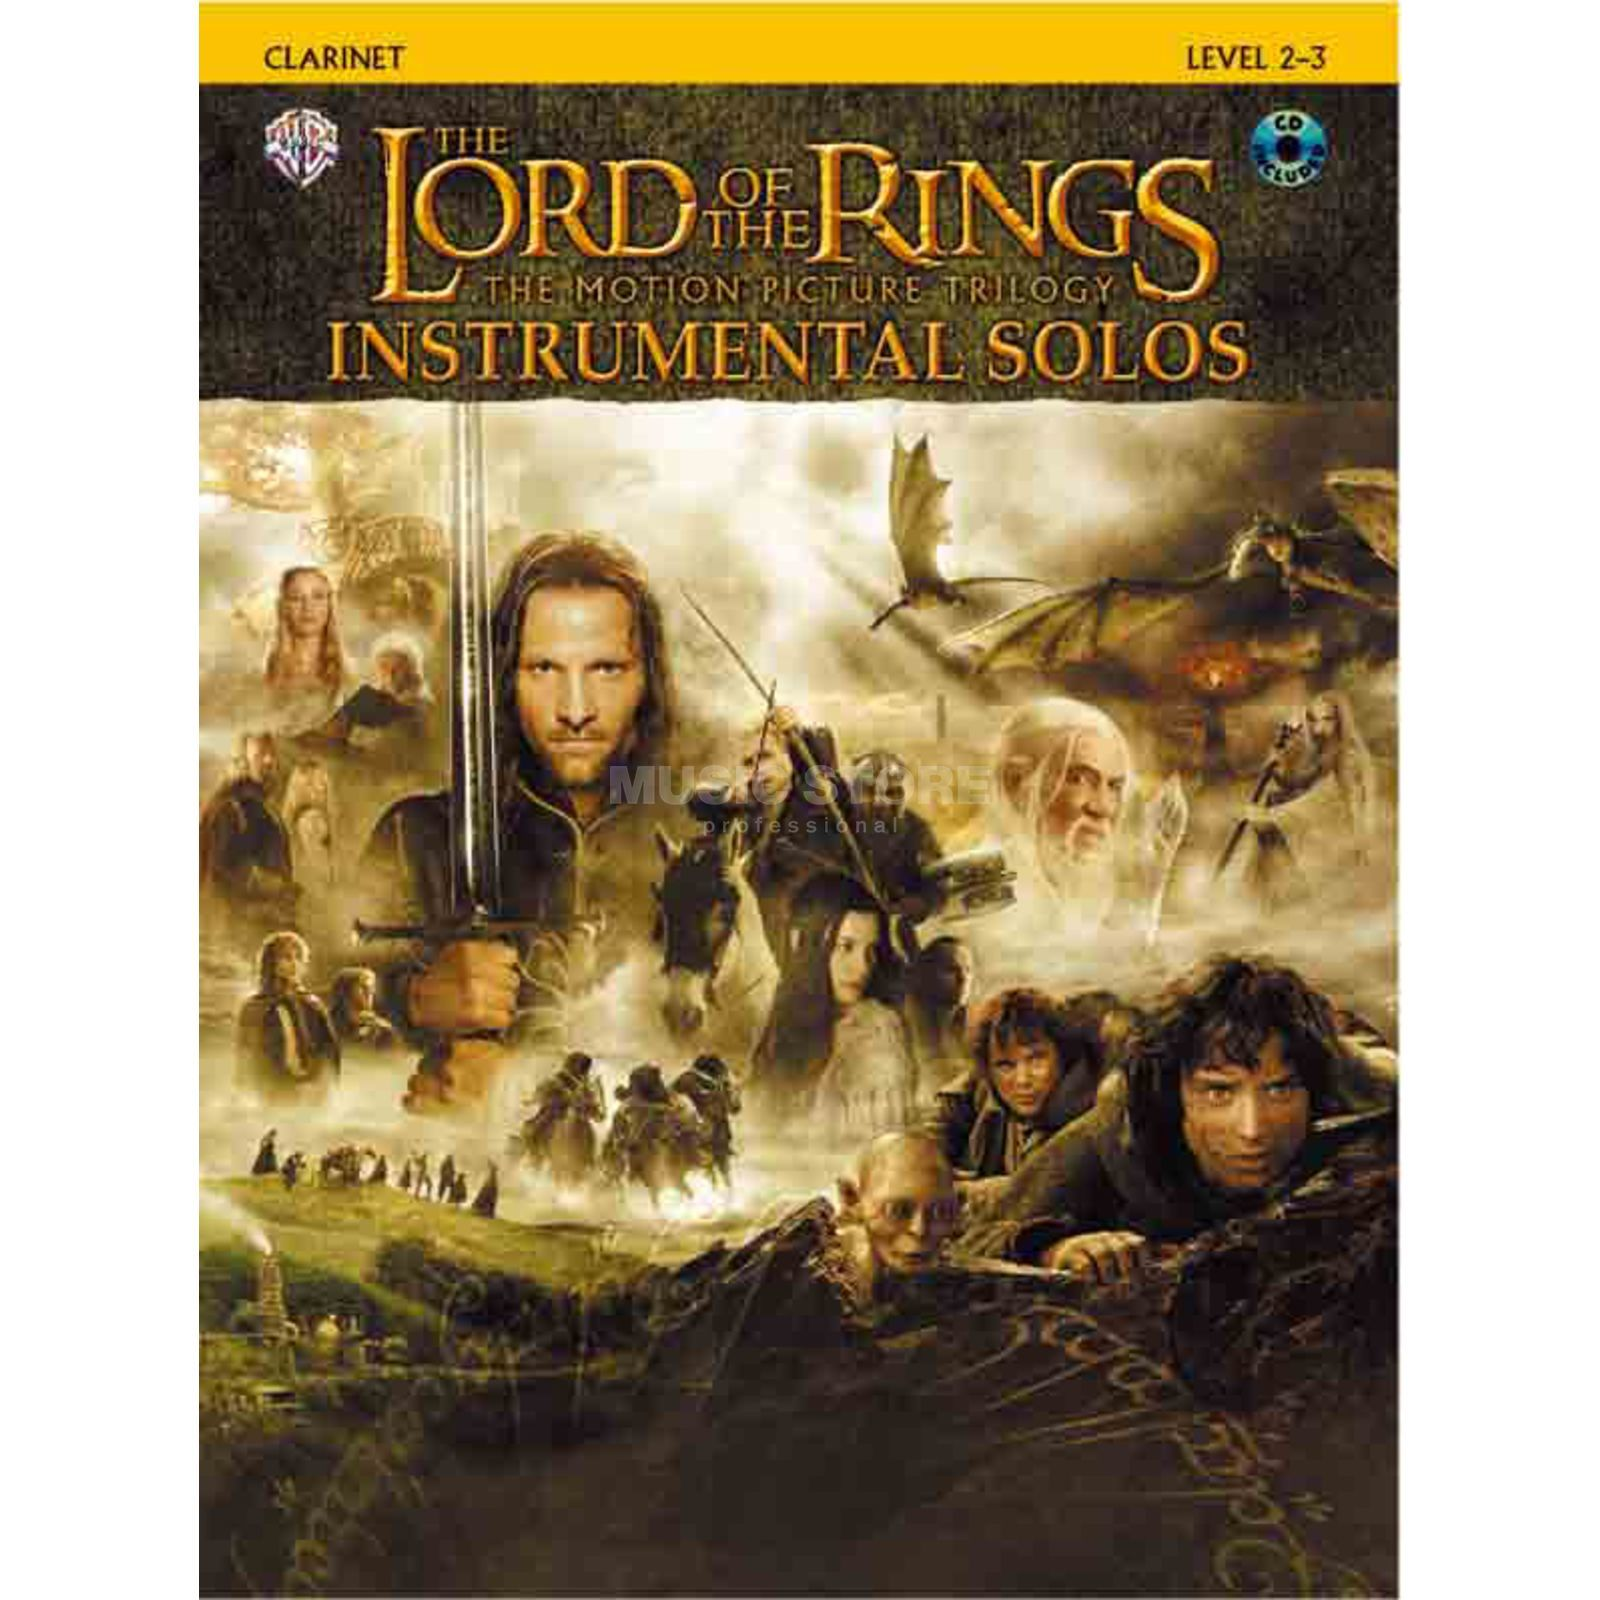 Alfred Music Lord of the Rings - Clarinet Instrumental Solos, Book/CD Produktbillede